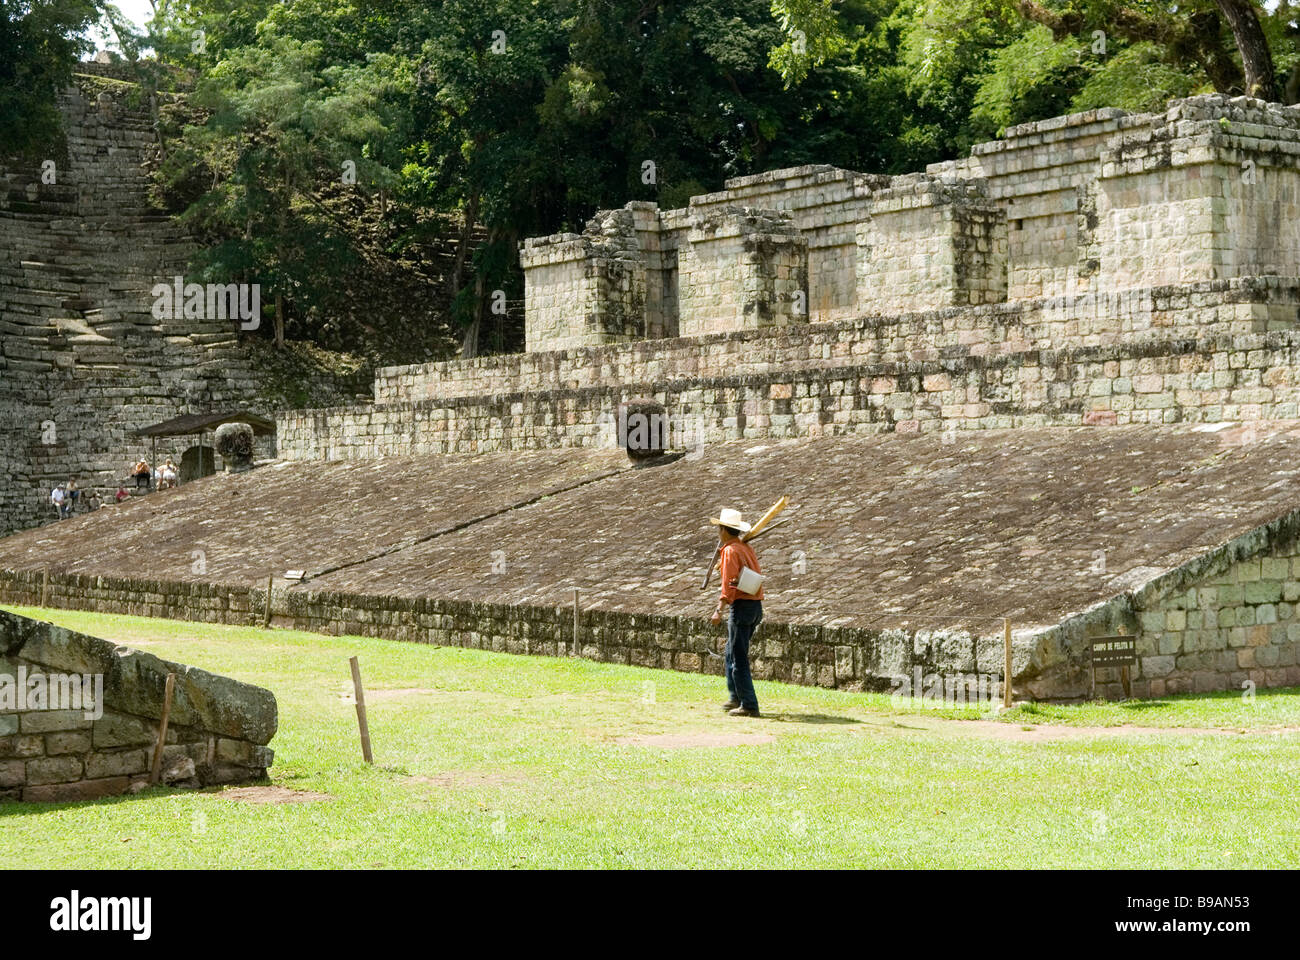 Copan, Honduras. The ballcourt at the Great Plaza, - Stock Image